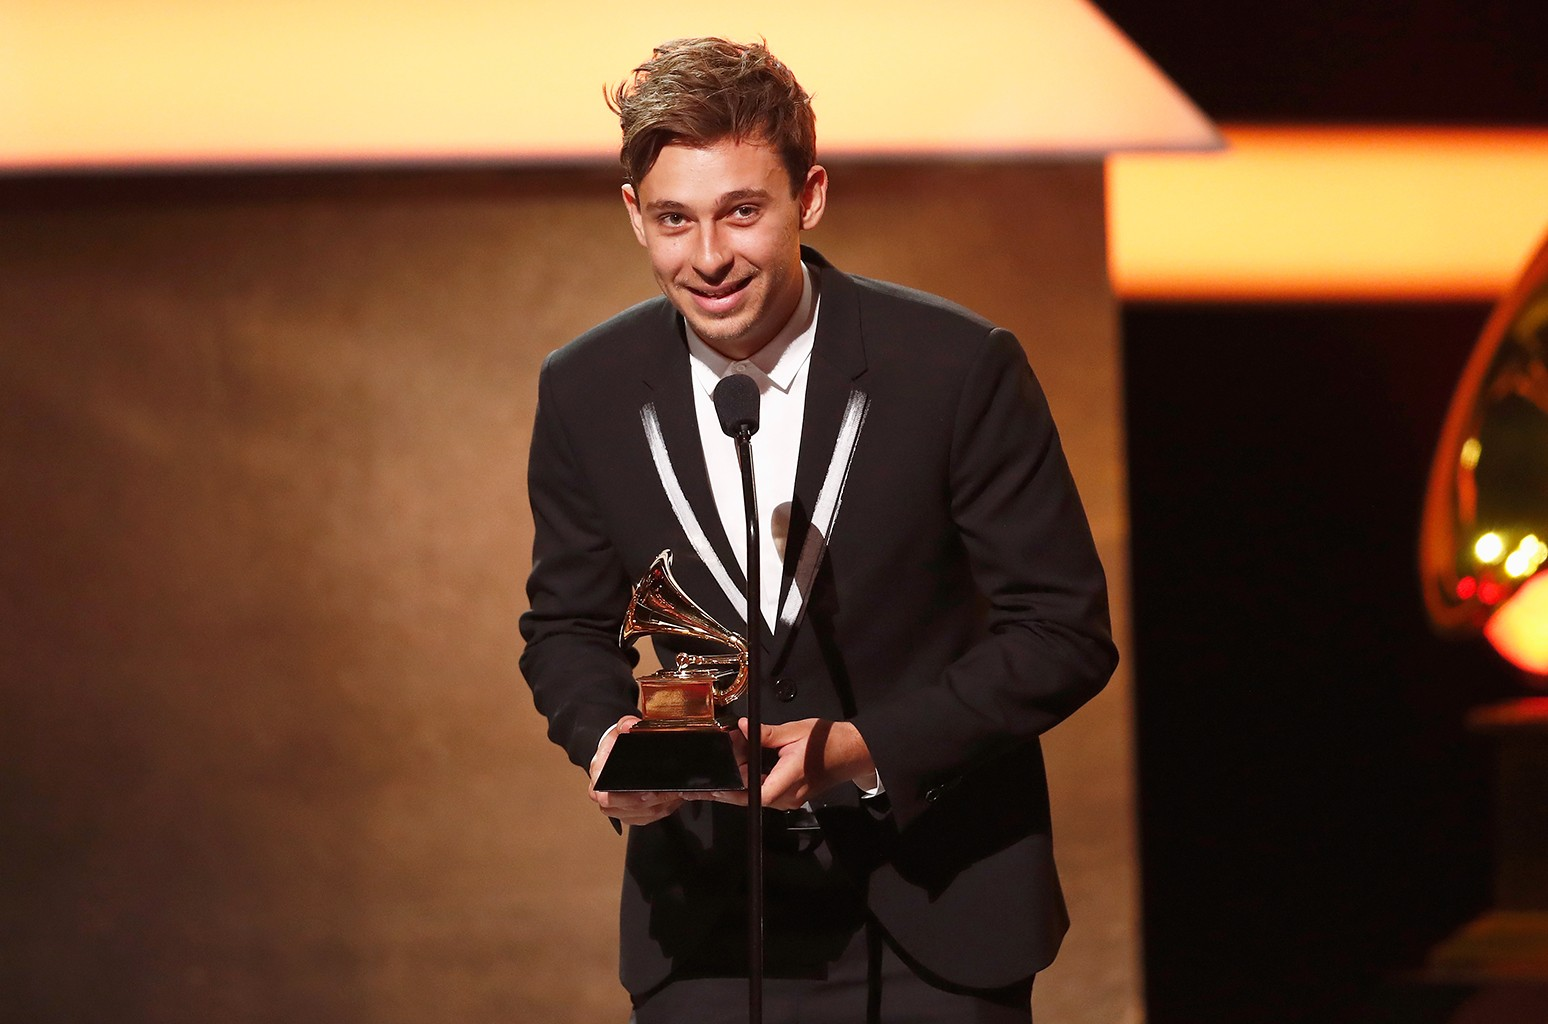 Flume accepts the Best Dance/Electronic Album award for 'Skin' onstage at the Premiere Ceremony during the 59th Grammy Awards at Microsoft Theater on Feb. 12, 2017 in Los Angeles.